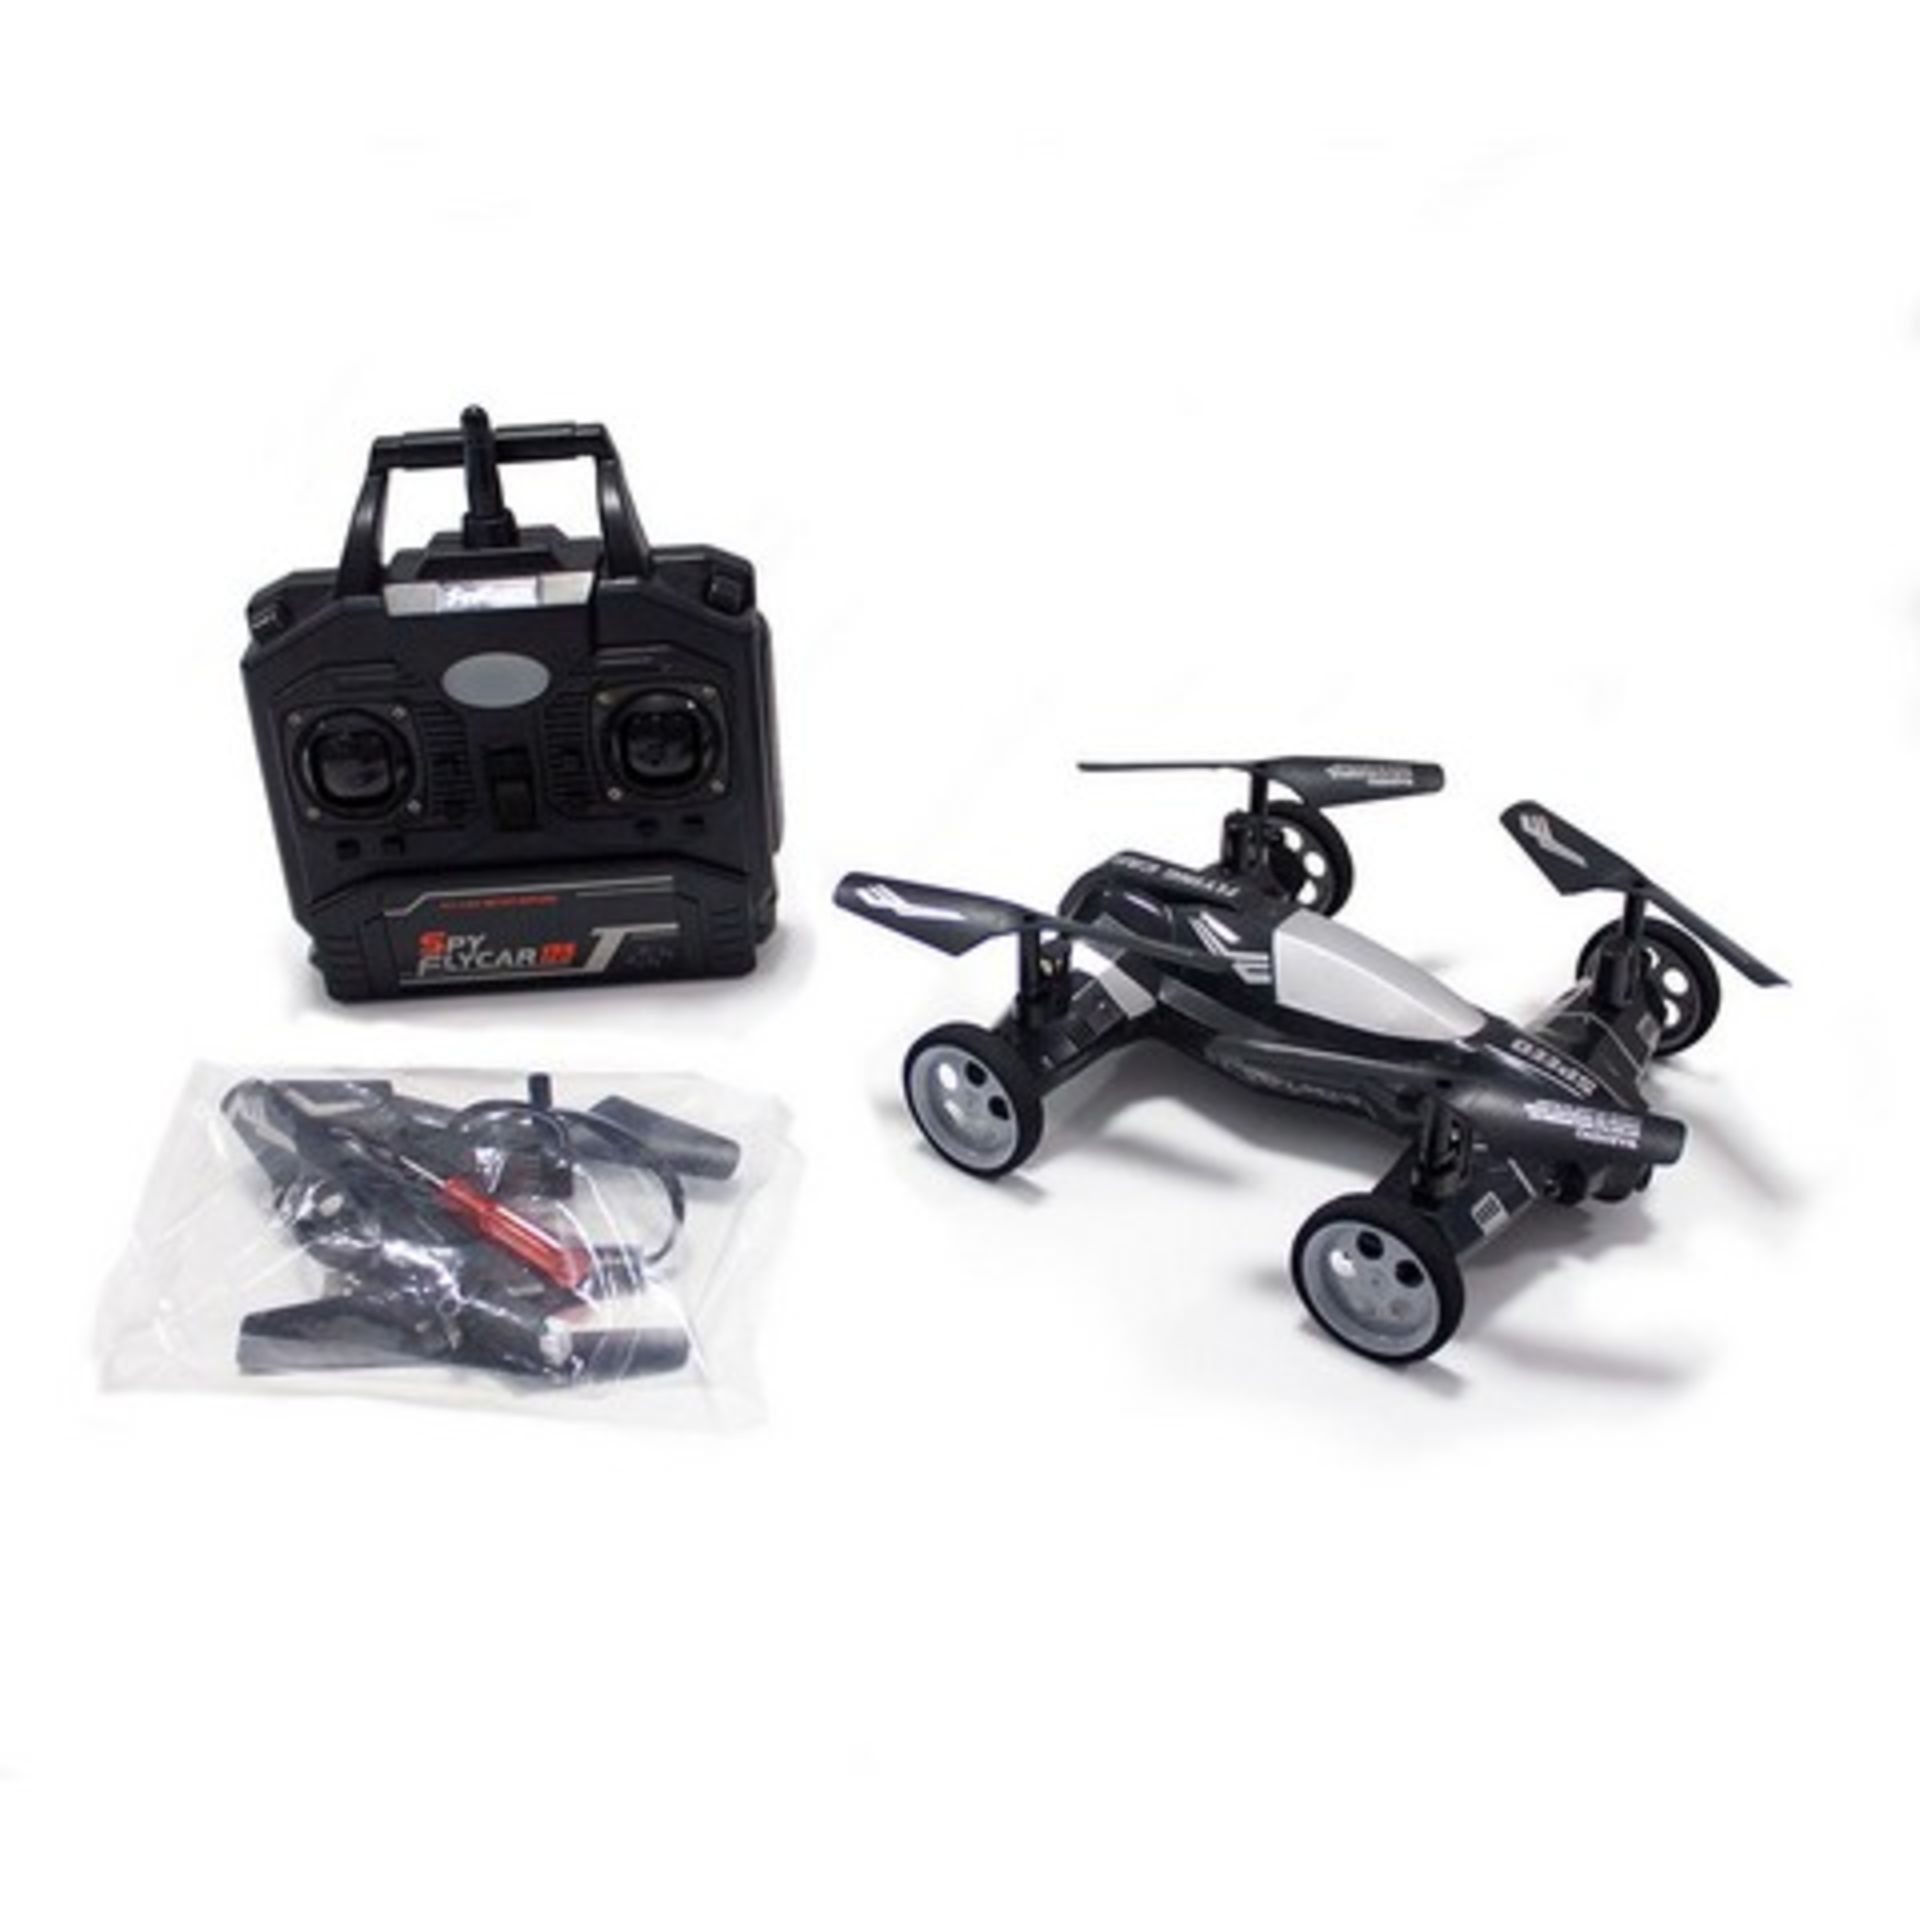 Lot 51937 - V Brand New Radio Control Quad-Copter Orbit Moon Buggy - 720P HD Camera - 4GB Micro SD Card Included